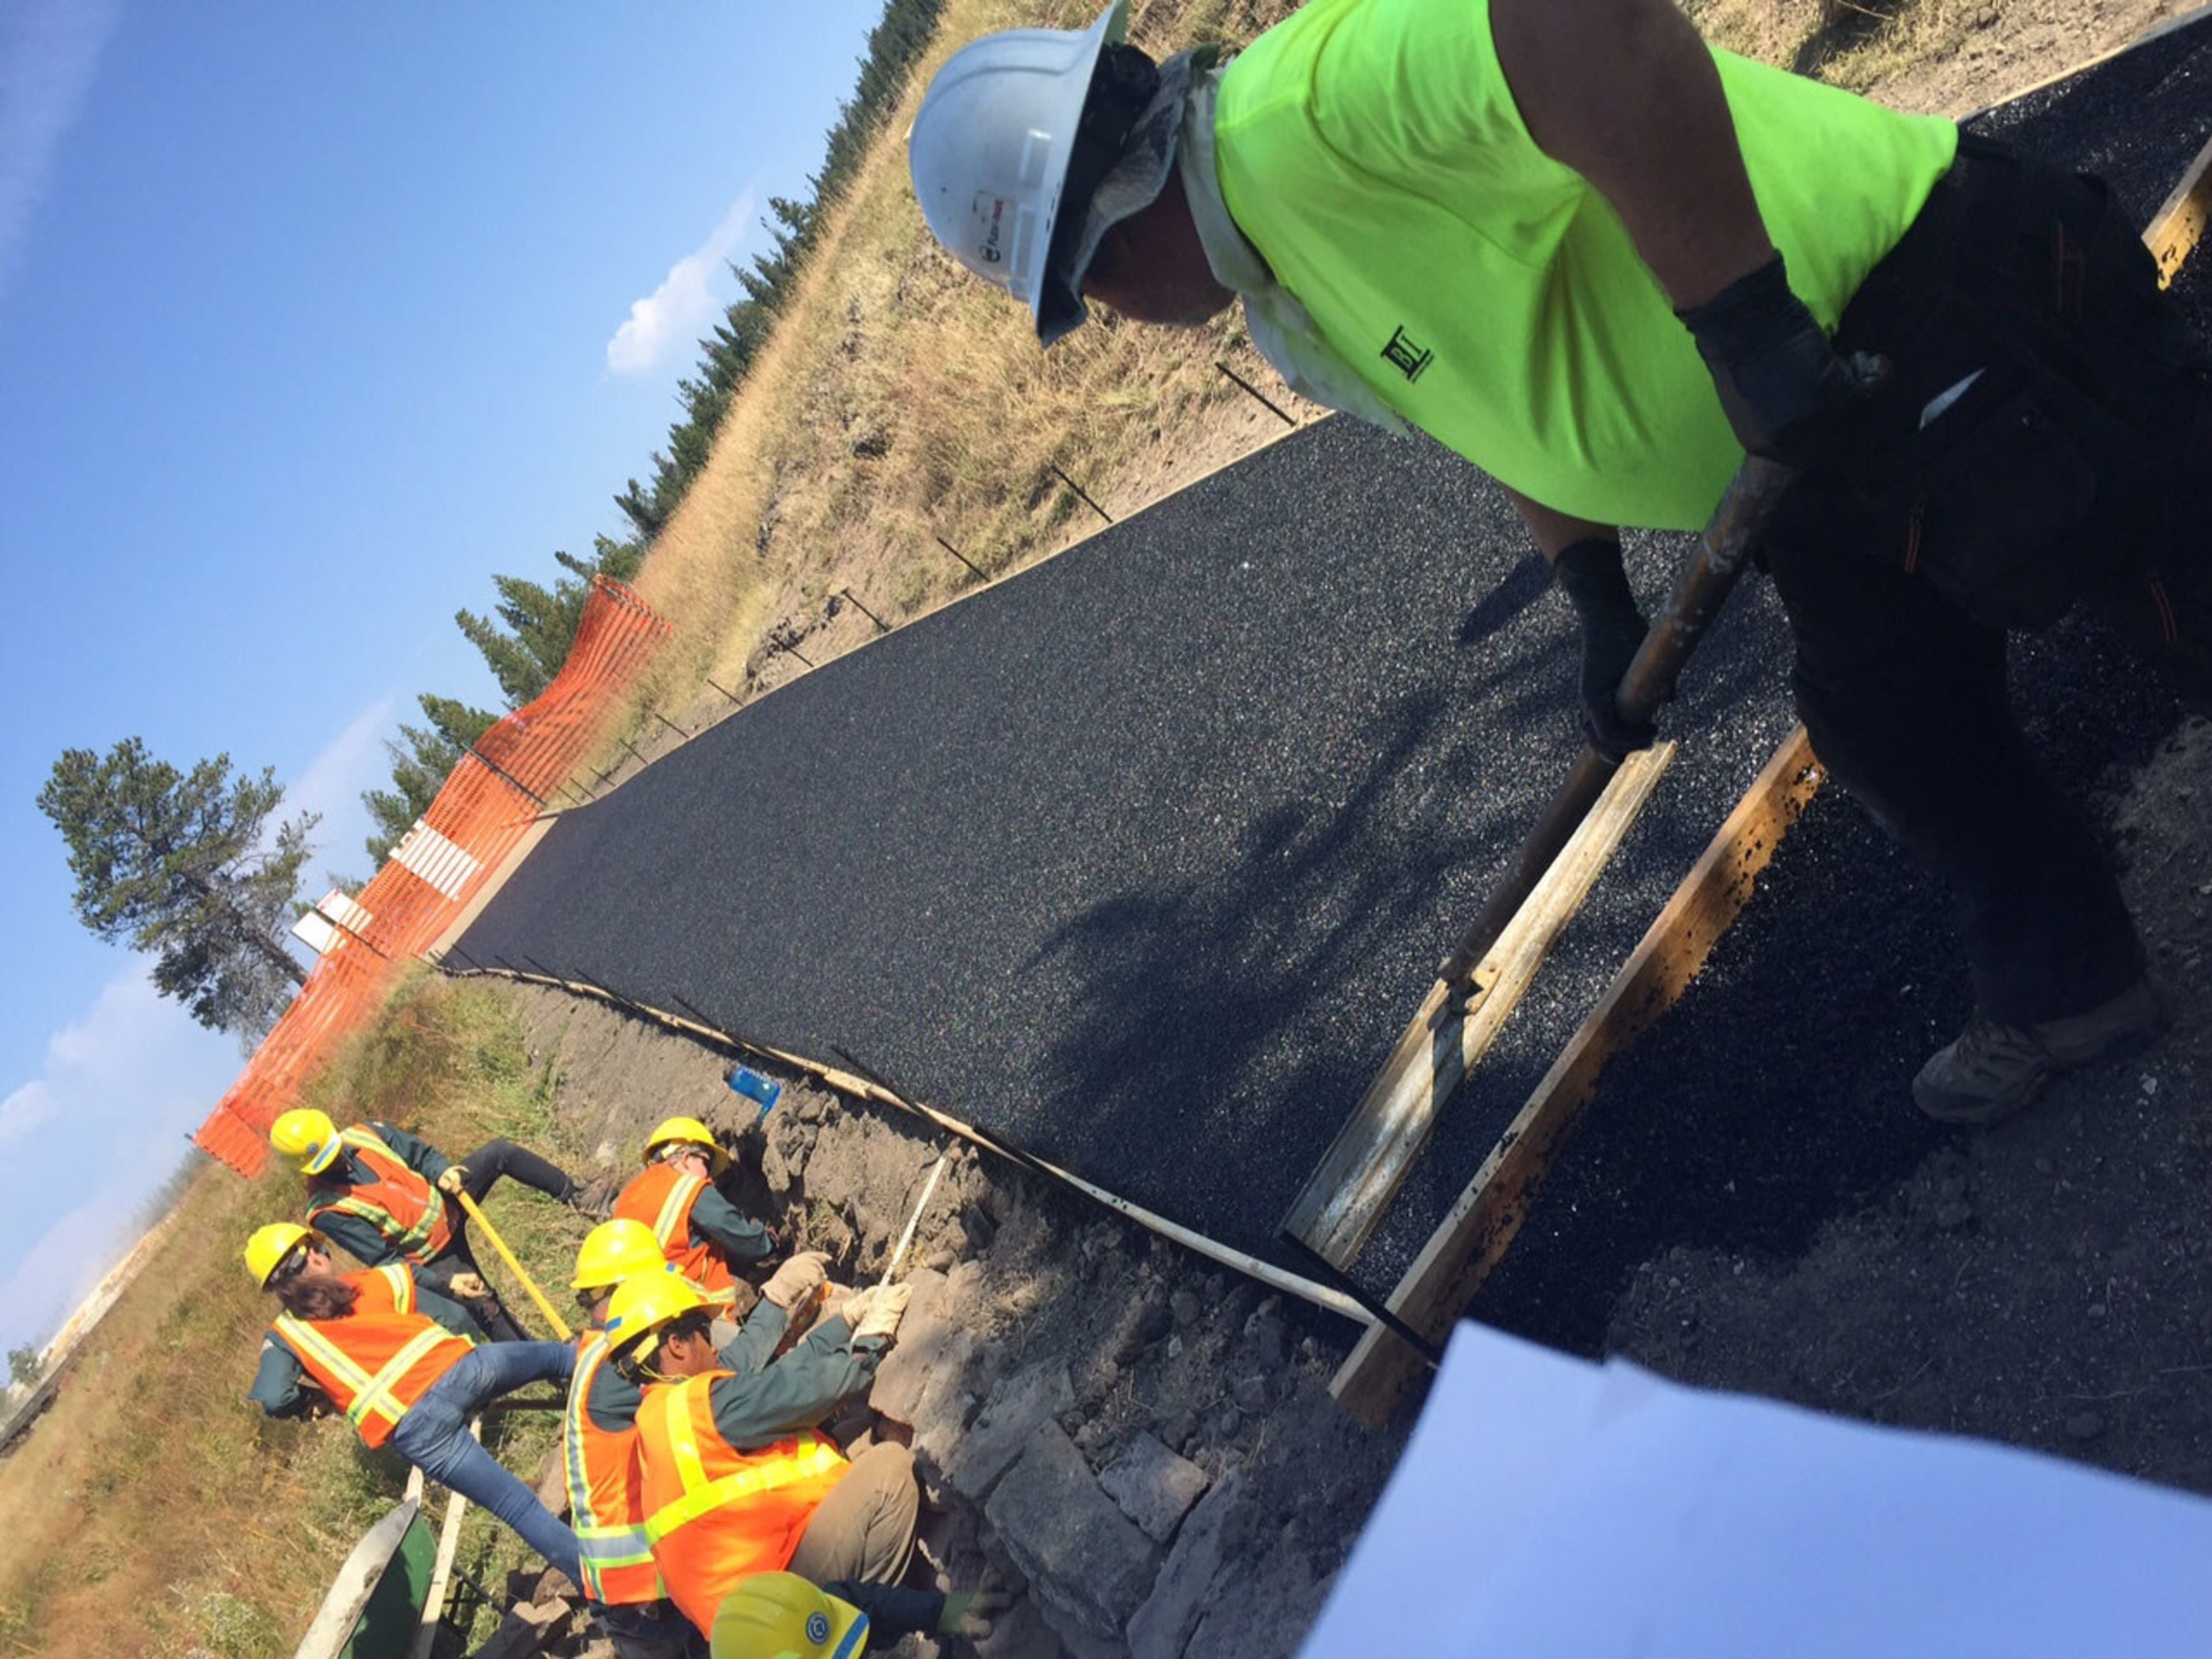 Michelin employees work on new environmental path at Yellowstone's Old Faithful Geyser